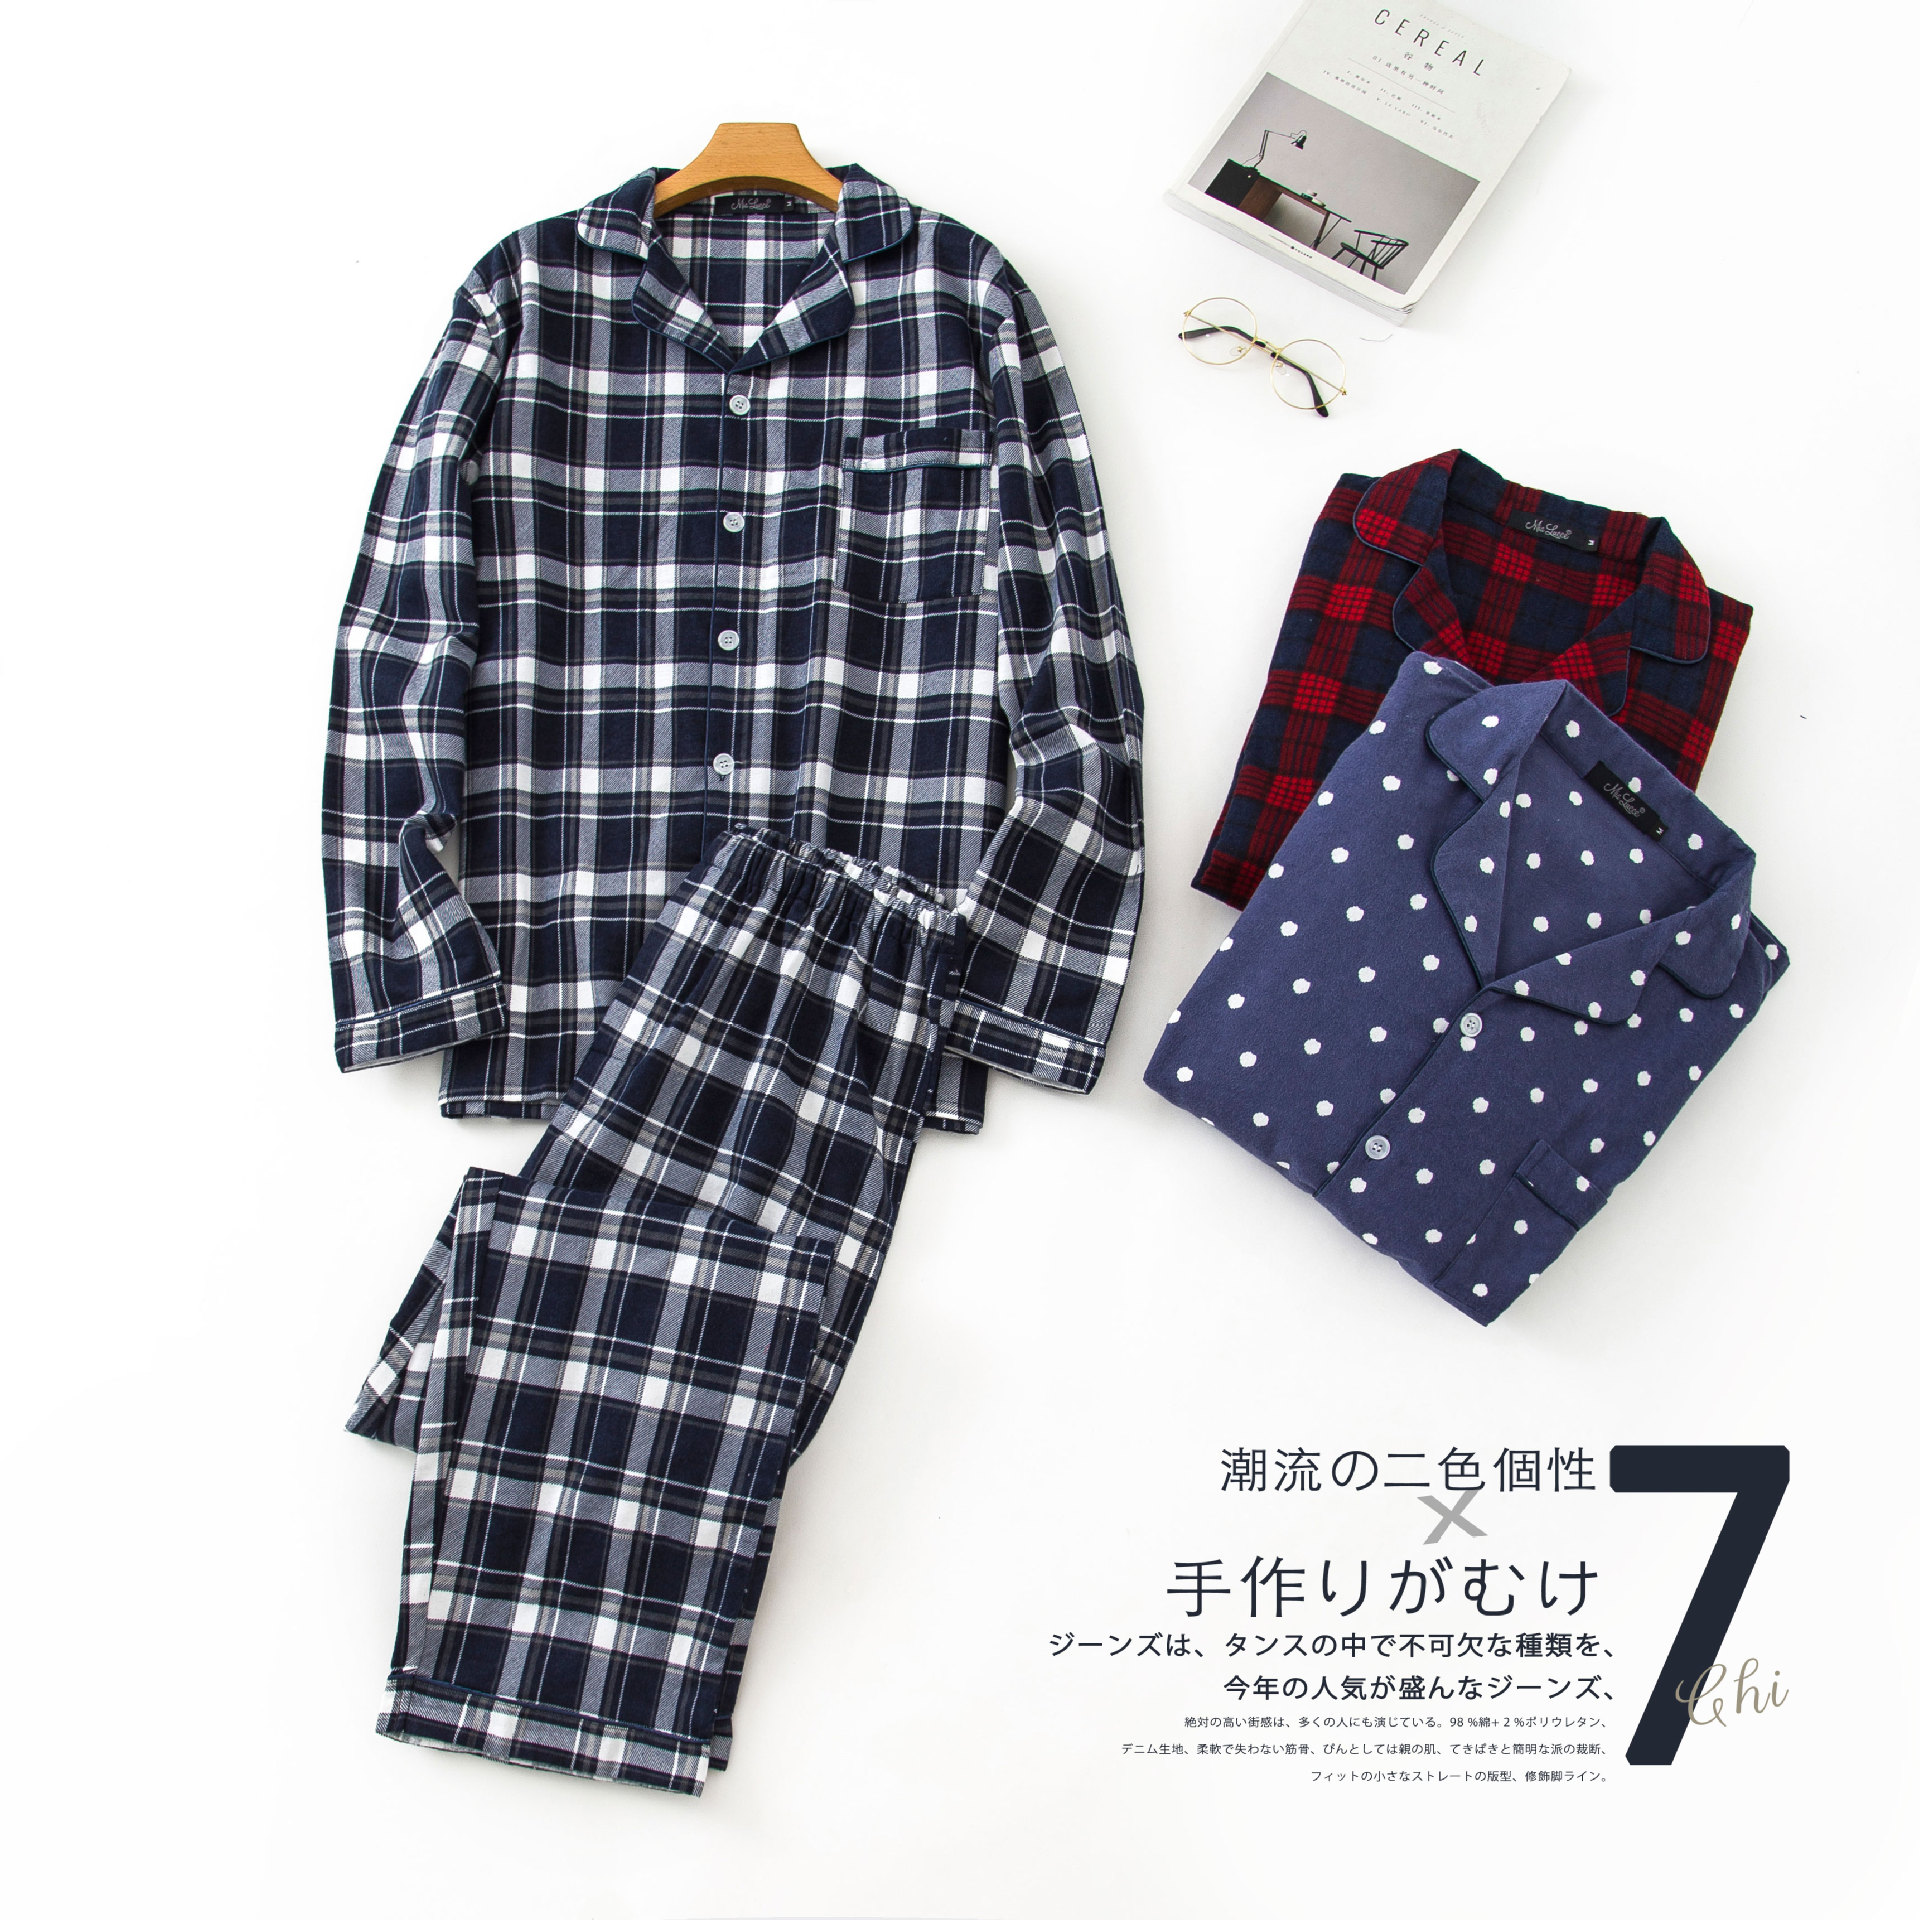 New Cotton Pajamas-Sets Men Autumn Long-sleeved Trousers Pijama Suits Blue Plaid Sleepwear Winter Soft Velvet Clothing